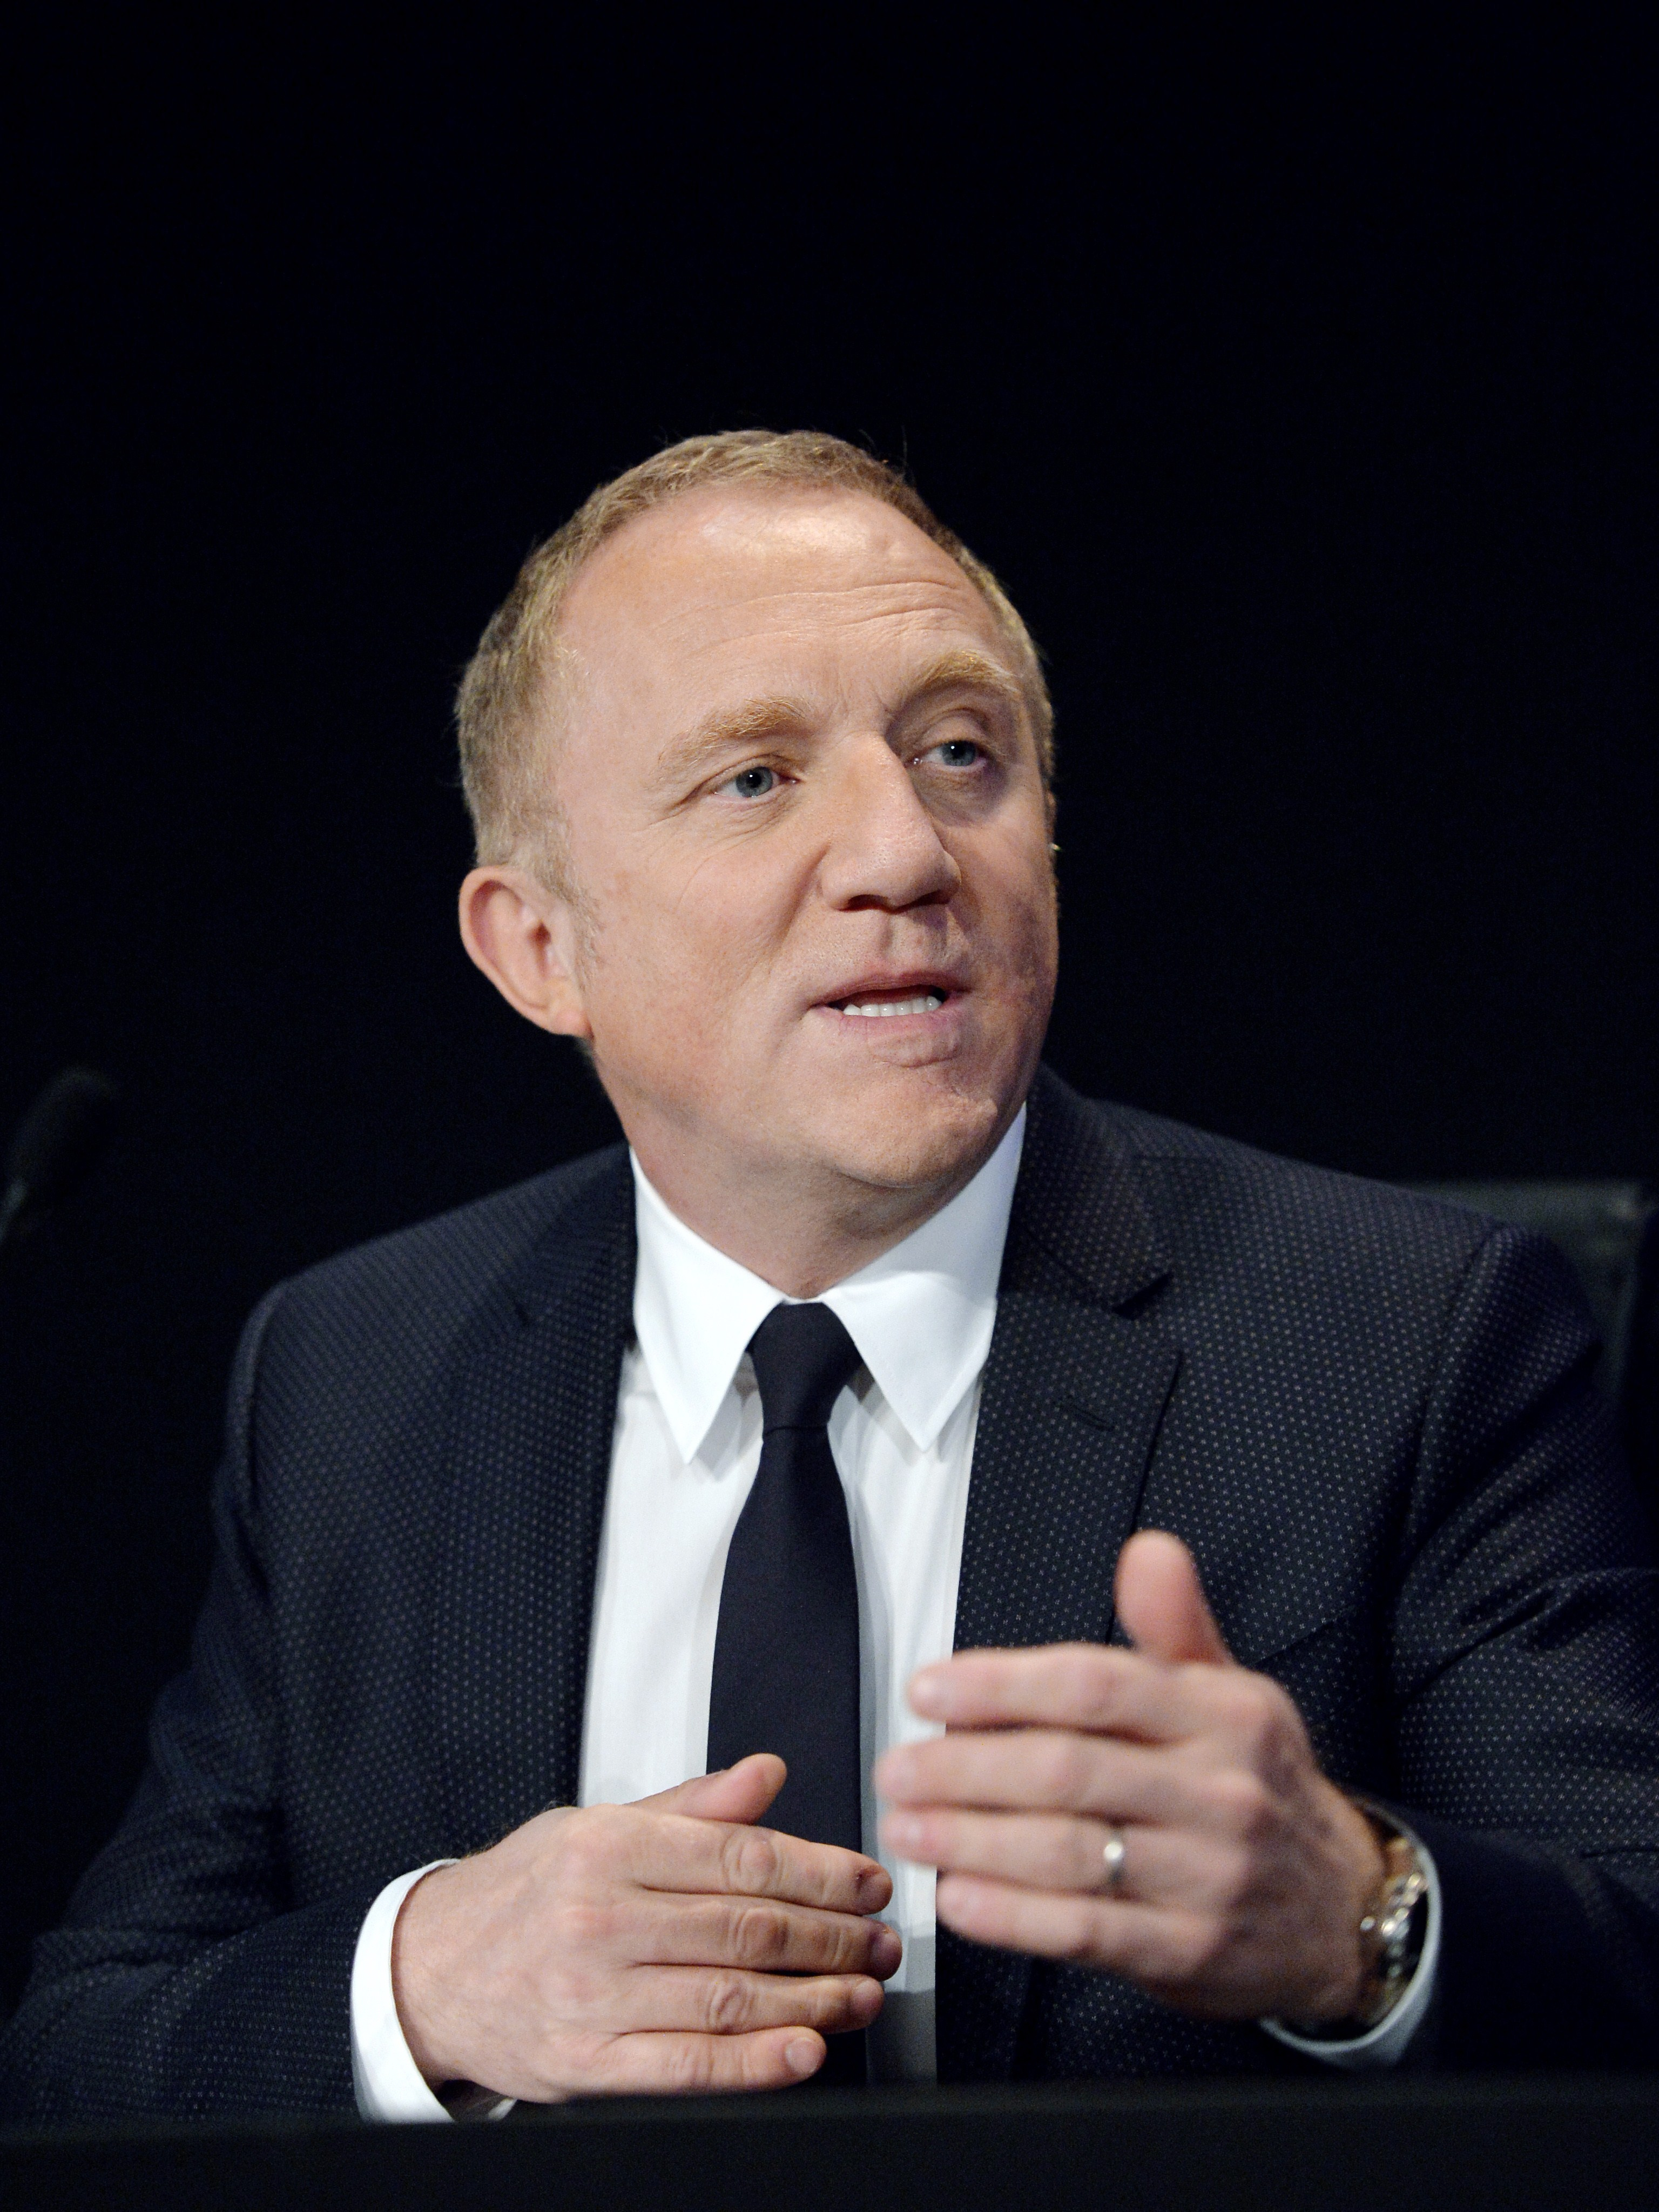 French luxury group Kering CEO Francois-Henri Pinault